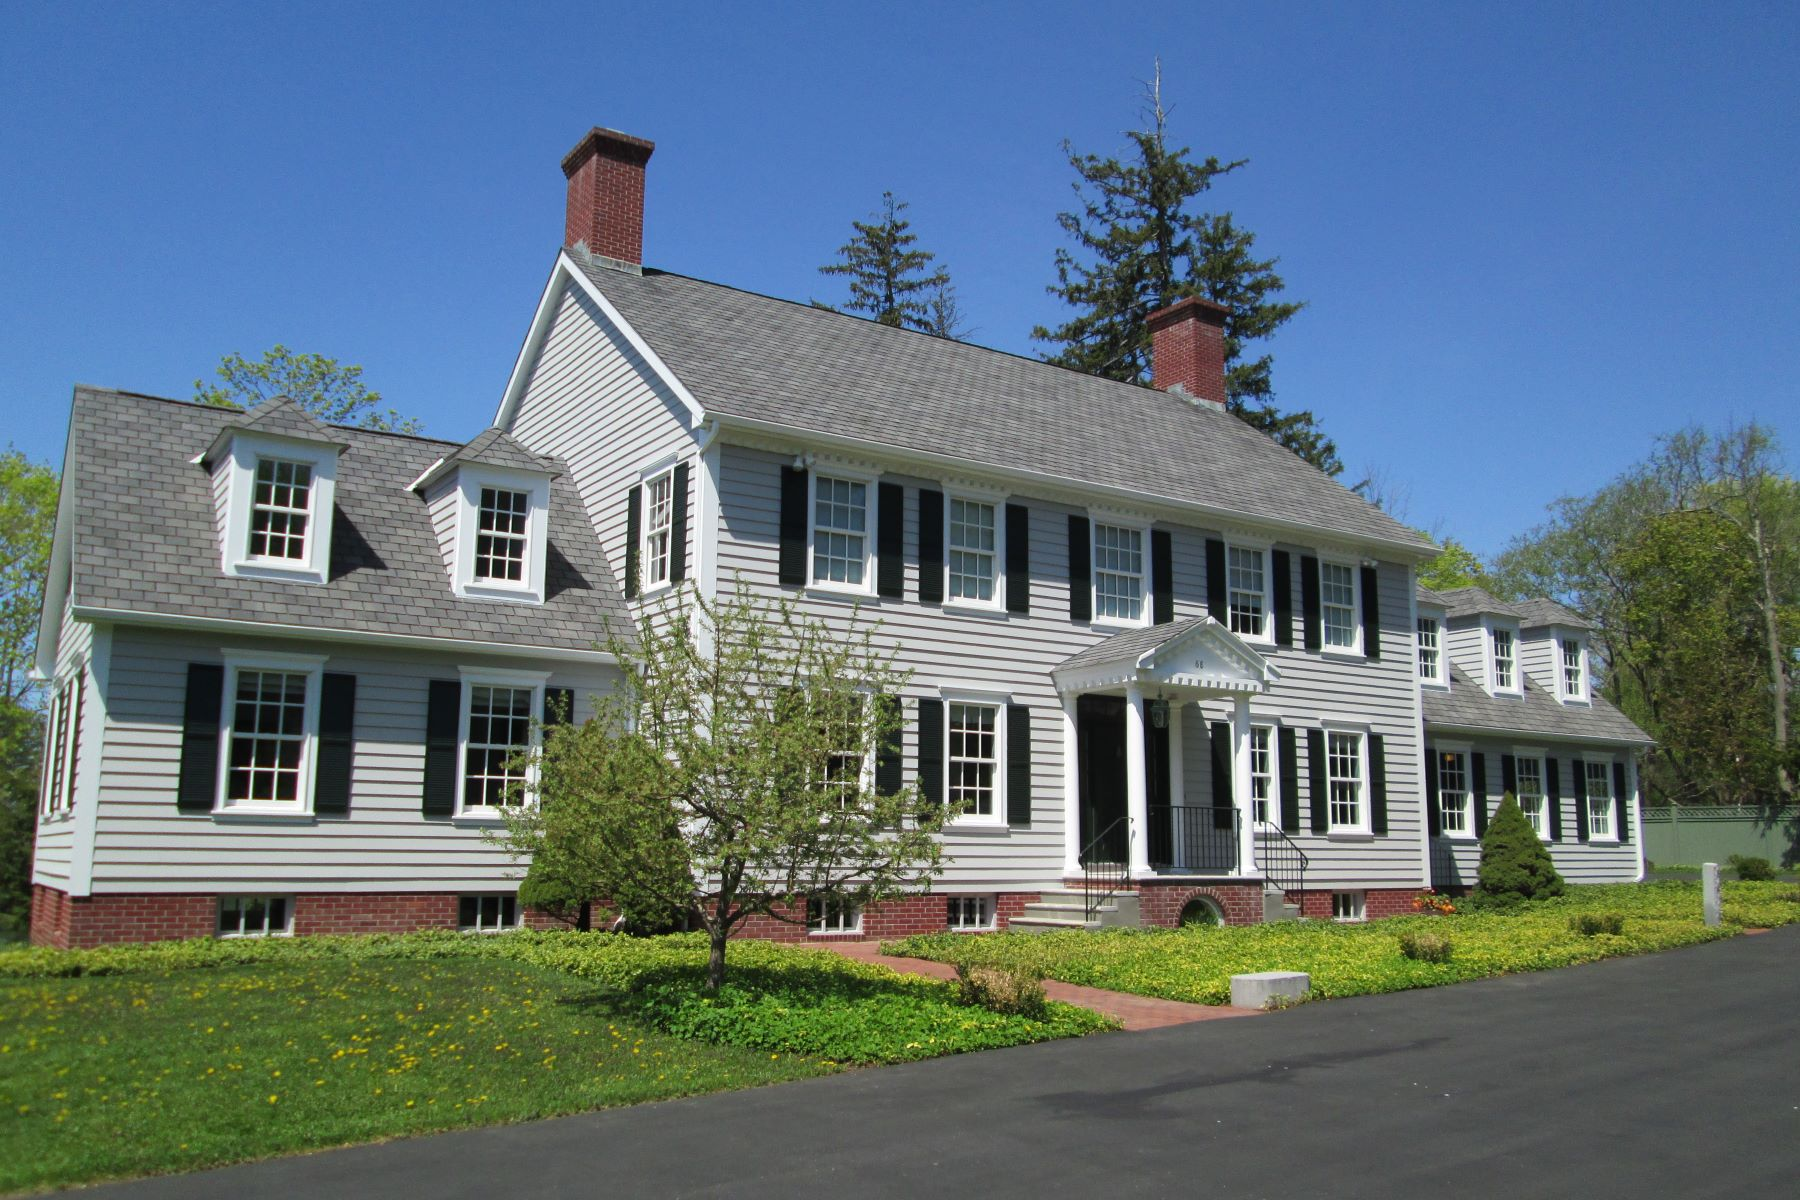 Single Family Homes for Sale at Impressive Village Colonial 68 South Street, Litchfield, Connecticut 06759 United States